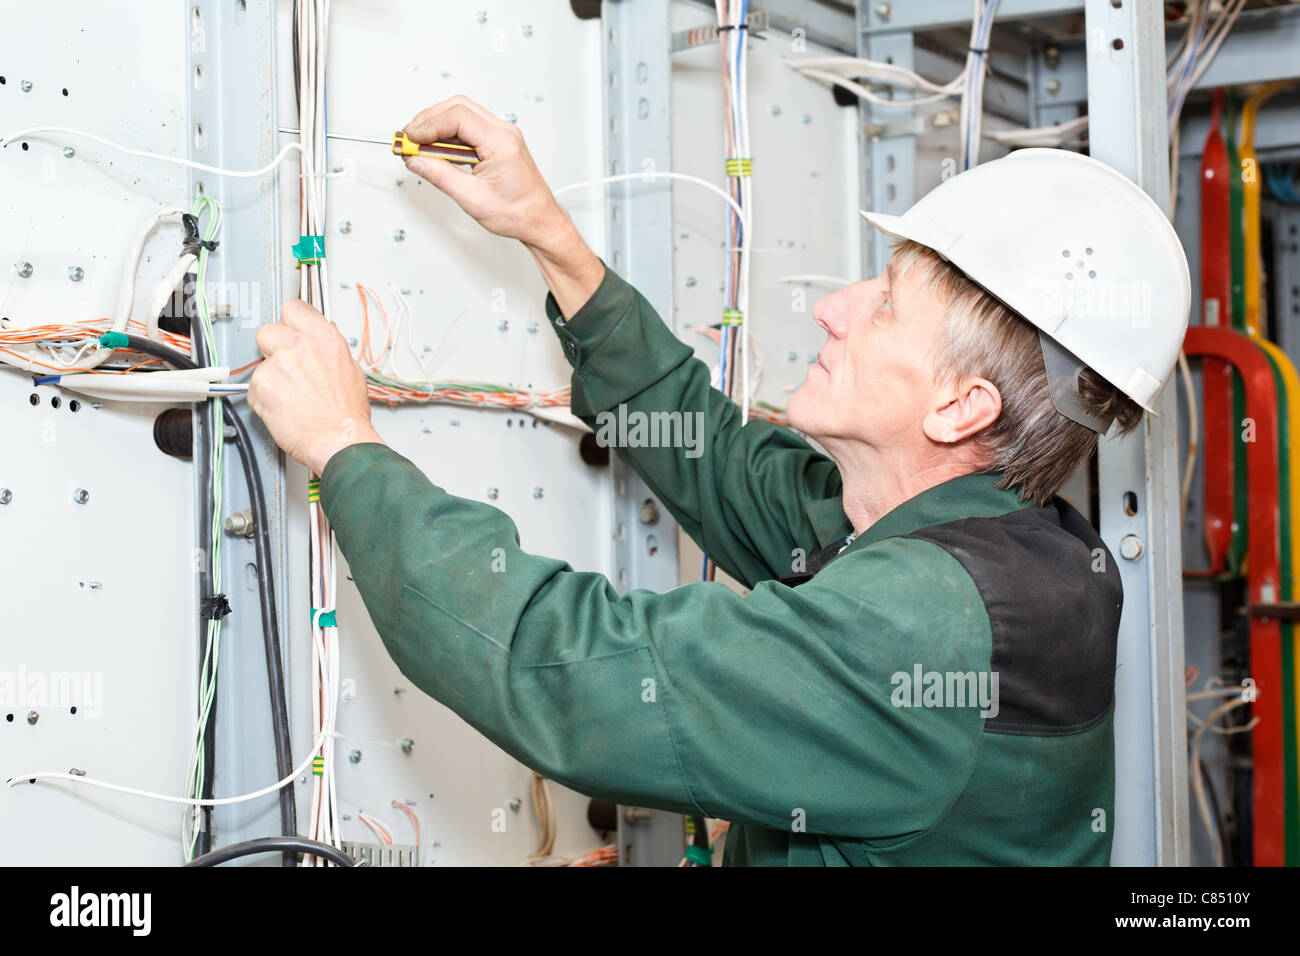 People Electrical Wiring Not Lossing Diagram Circuit For A Contractor Mature Electrician Working In White Hard Hat With Cables And Wires Rh Alamy Com Breaker Outlet